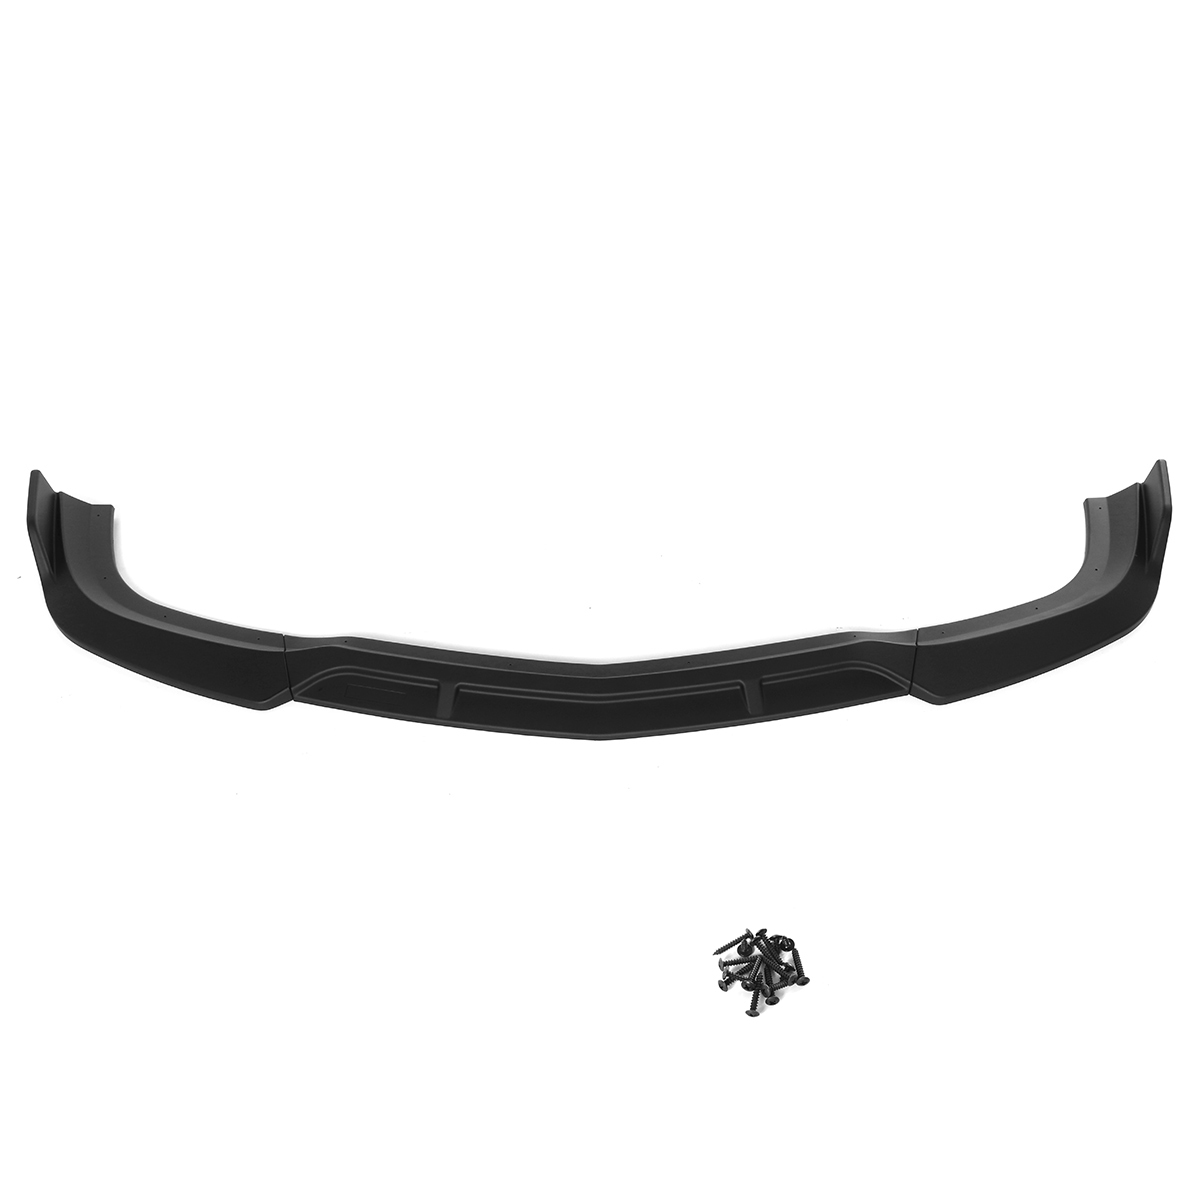 High Quality Car <font><b>Front</b></font> Bumper Splitter <font><b>Lip</b></font> Deflector <font><b>Lips</b></font> Spoiler Diffuser Protector Cover For Mercedes For <font><b>Benz</b></font> <font><b>W204</b></font> 2008-2014 image